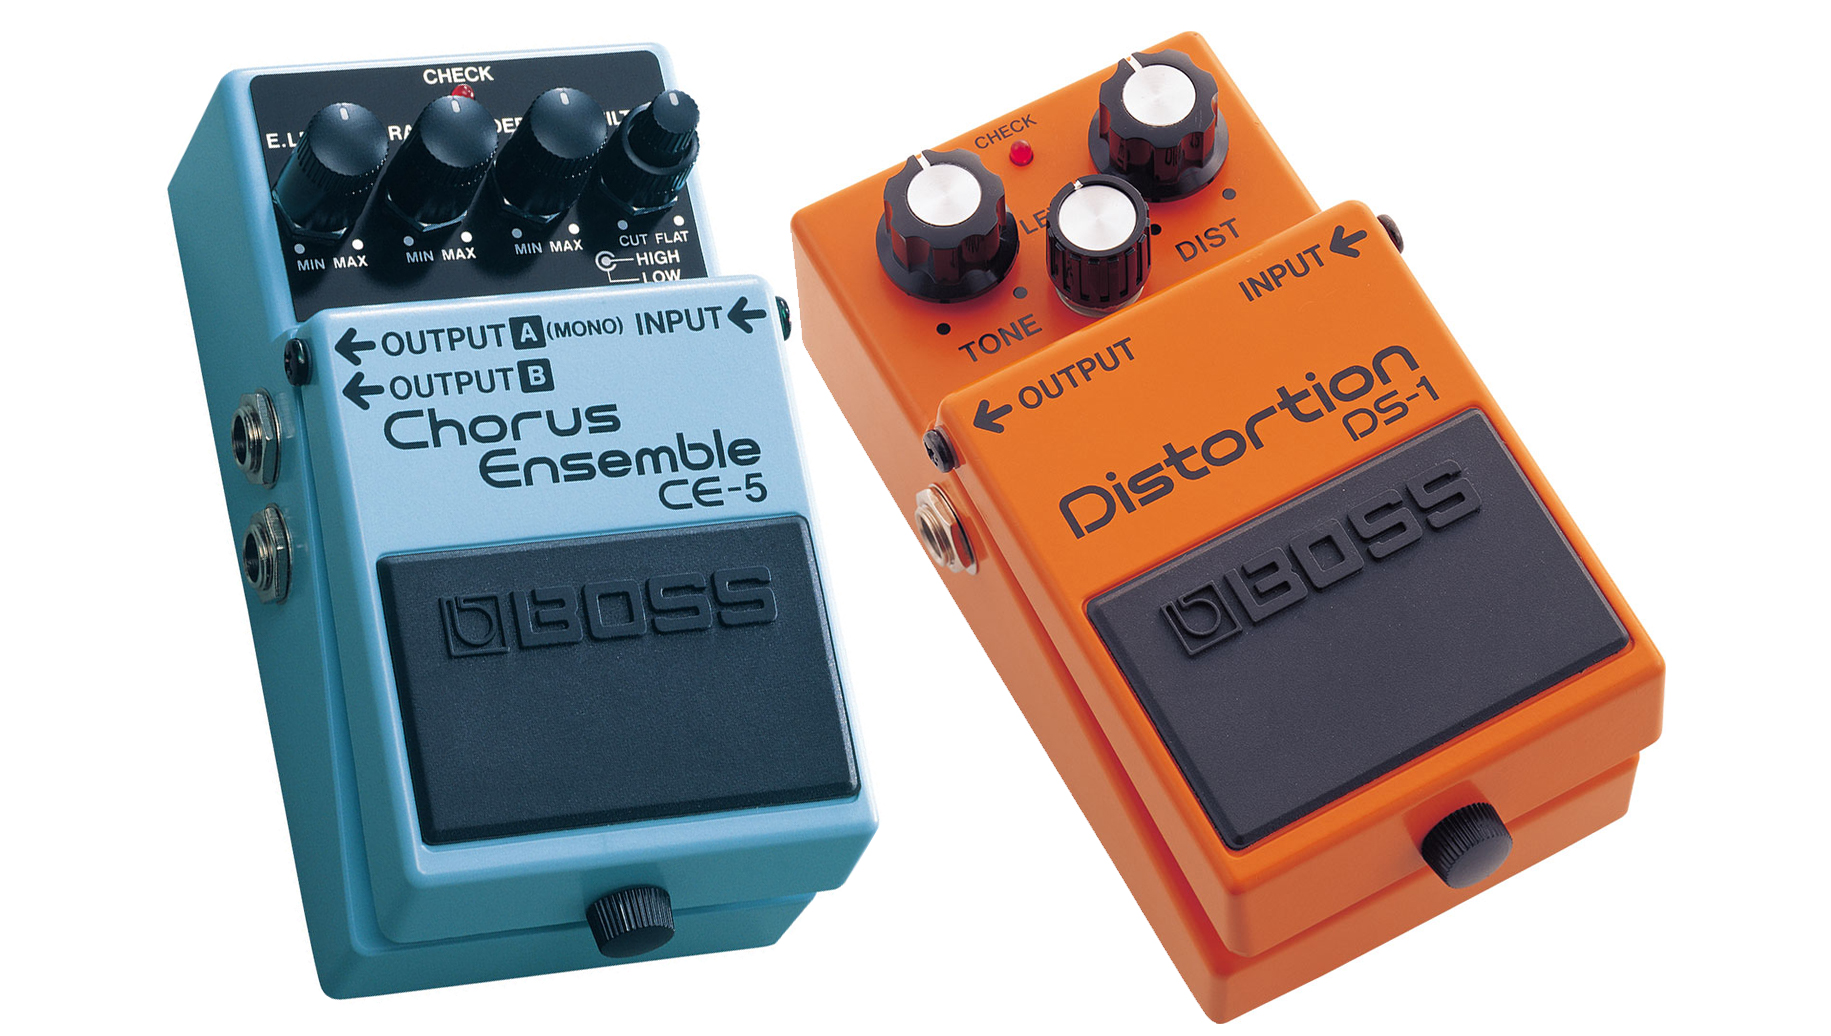 Boss DS-1 Distortion / CE-5 Chorus Ensemble